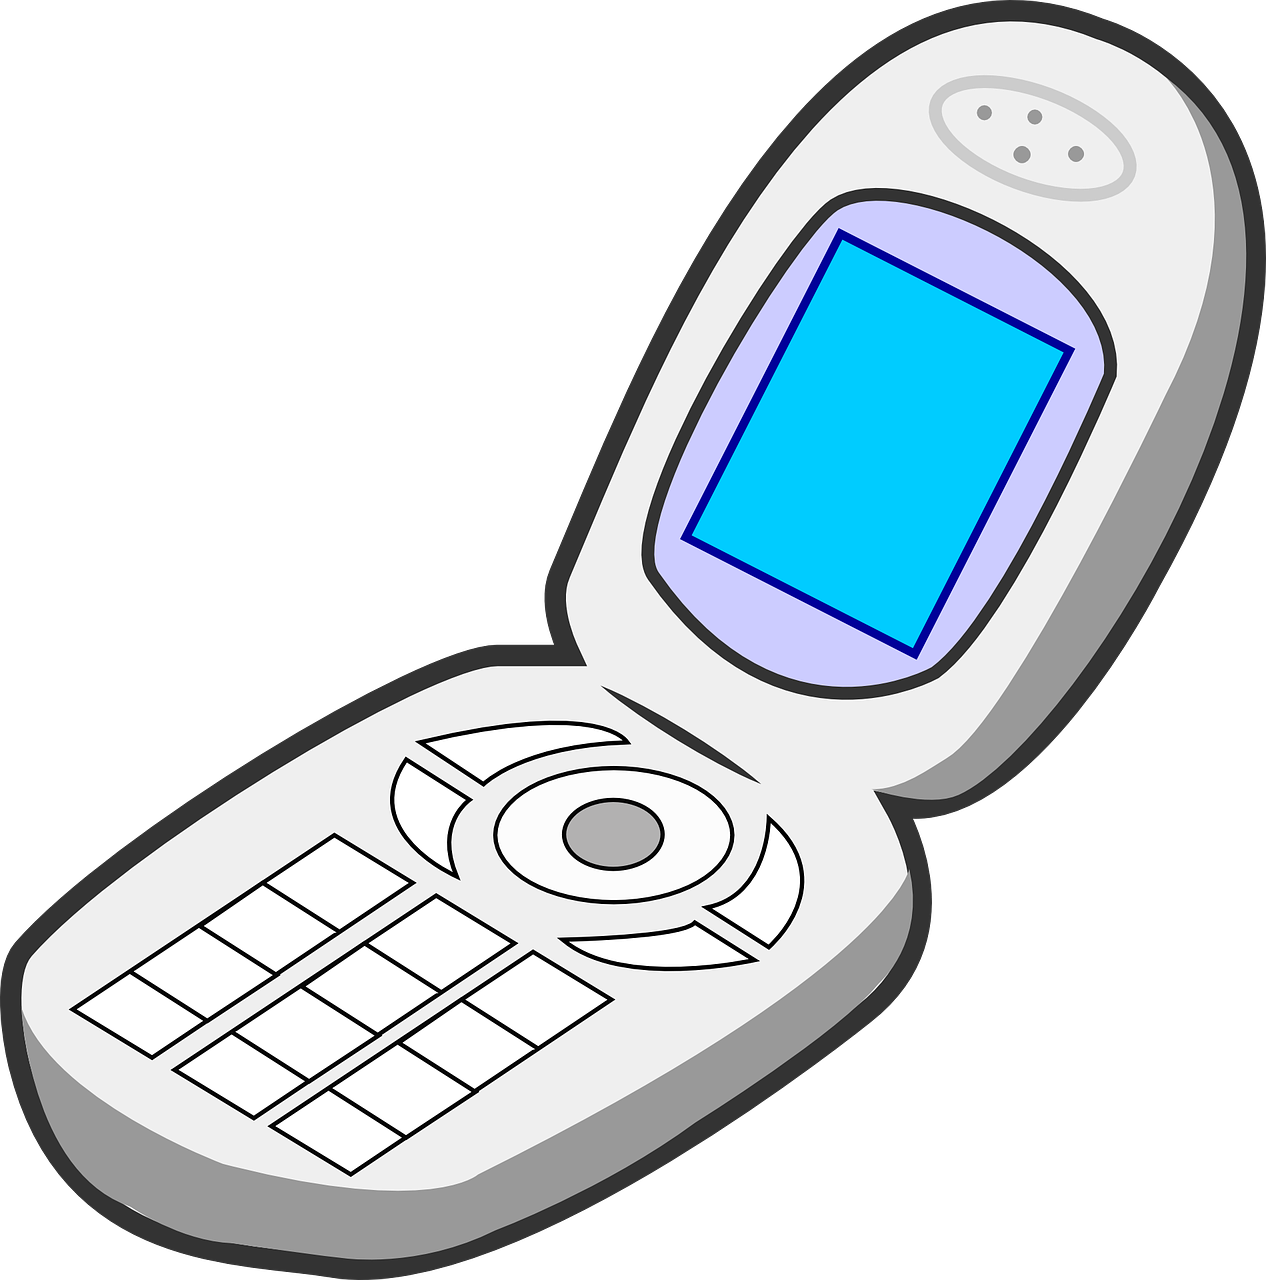 Flip phones for the Visually impaired are still relevant ...Old Cell Phone Clip Art